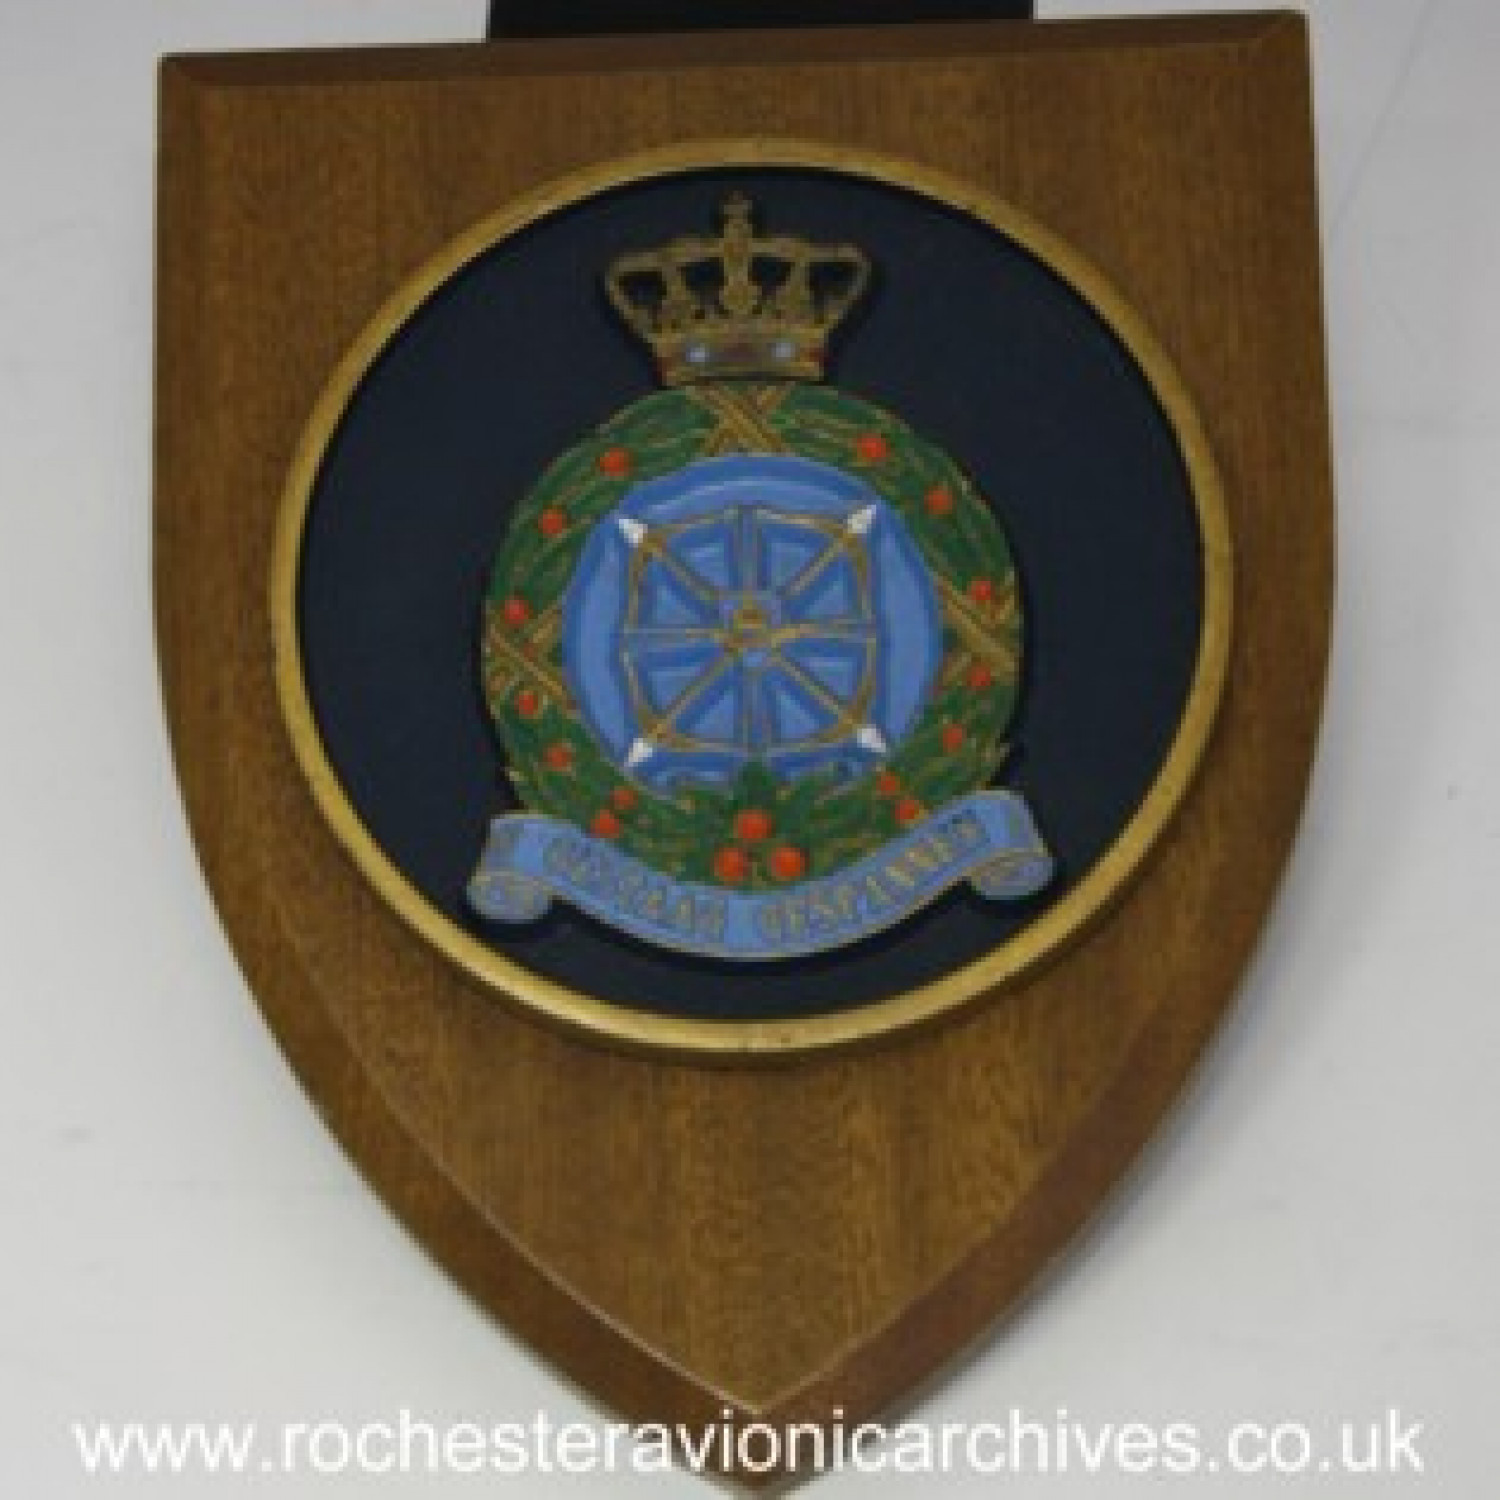 Plaque from RNLAF Volkel Air Base